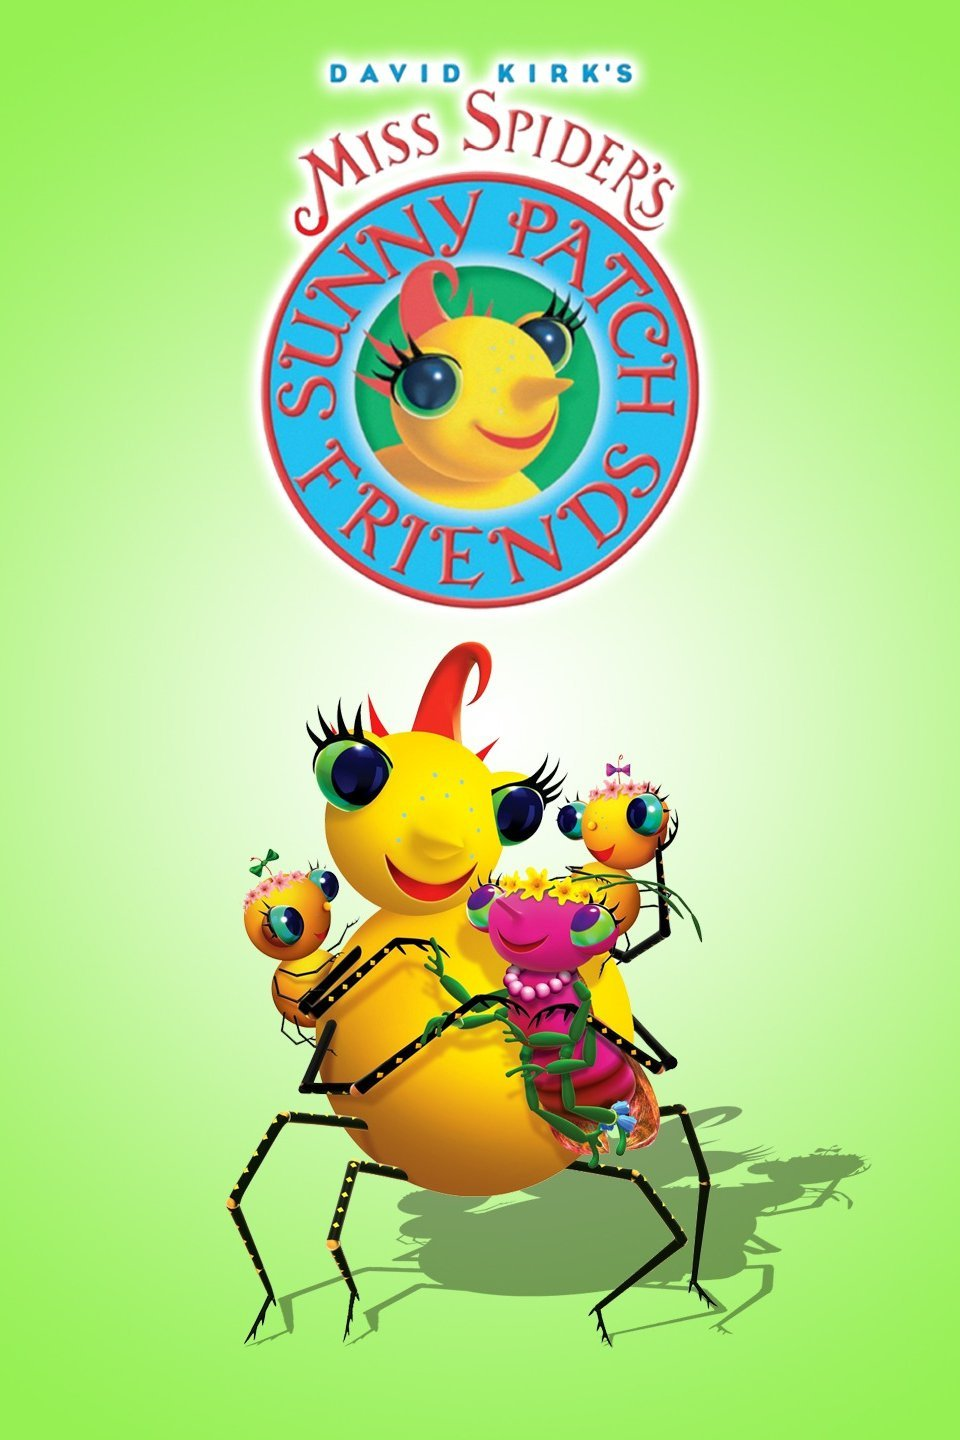 Qubo show miss spider's sunny patch friends.